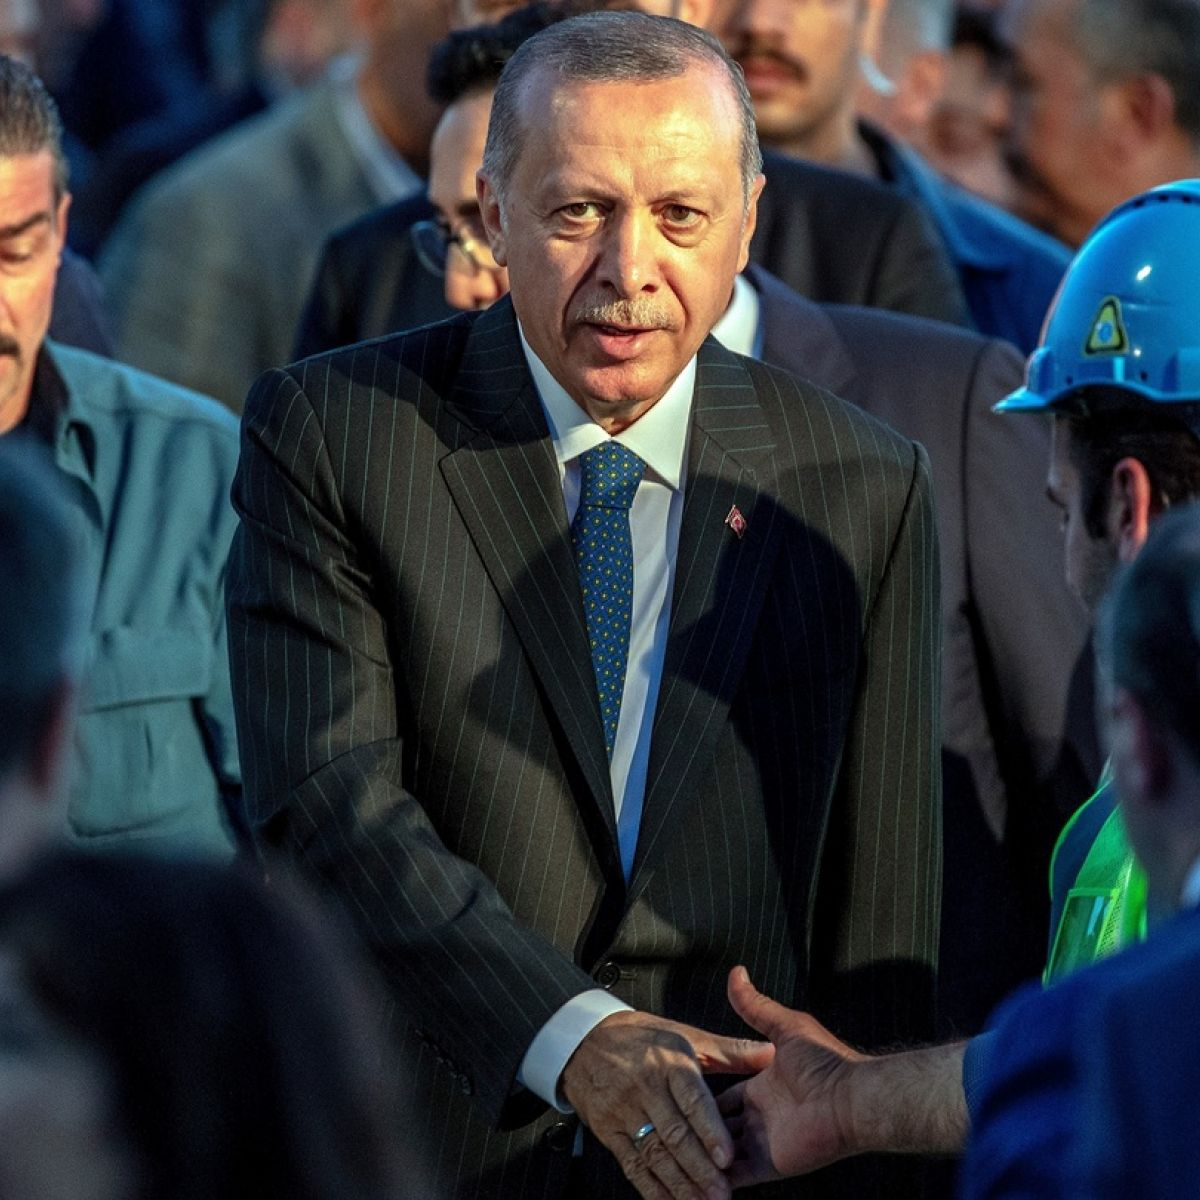 Turkish President Erdogan called on the Turks to take to the streets 16.07.2016 75